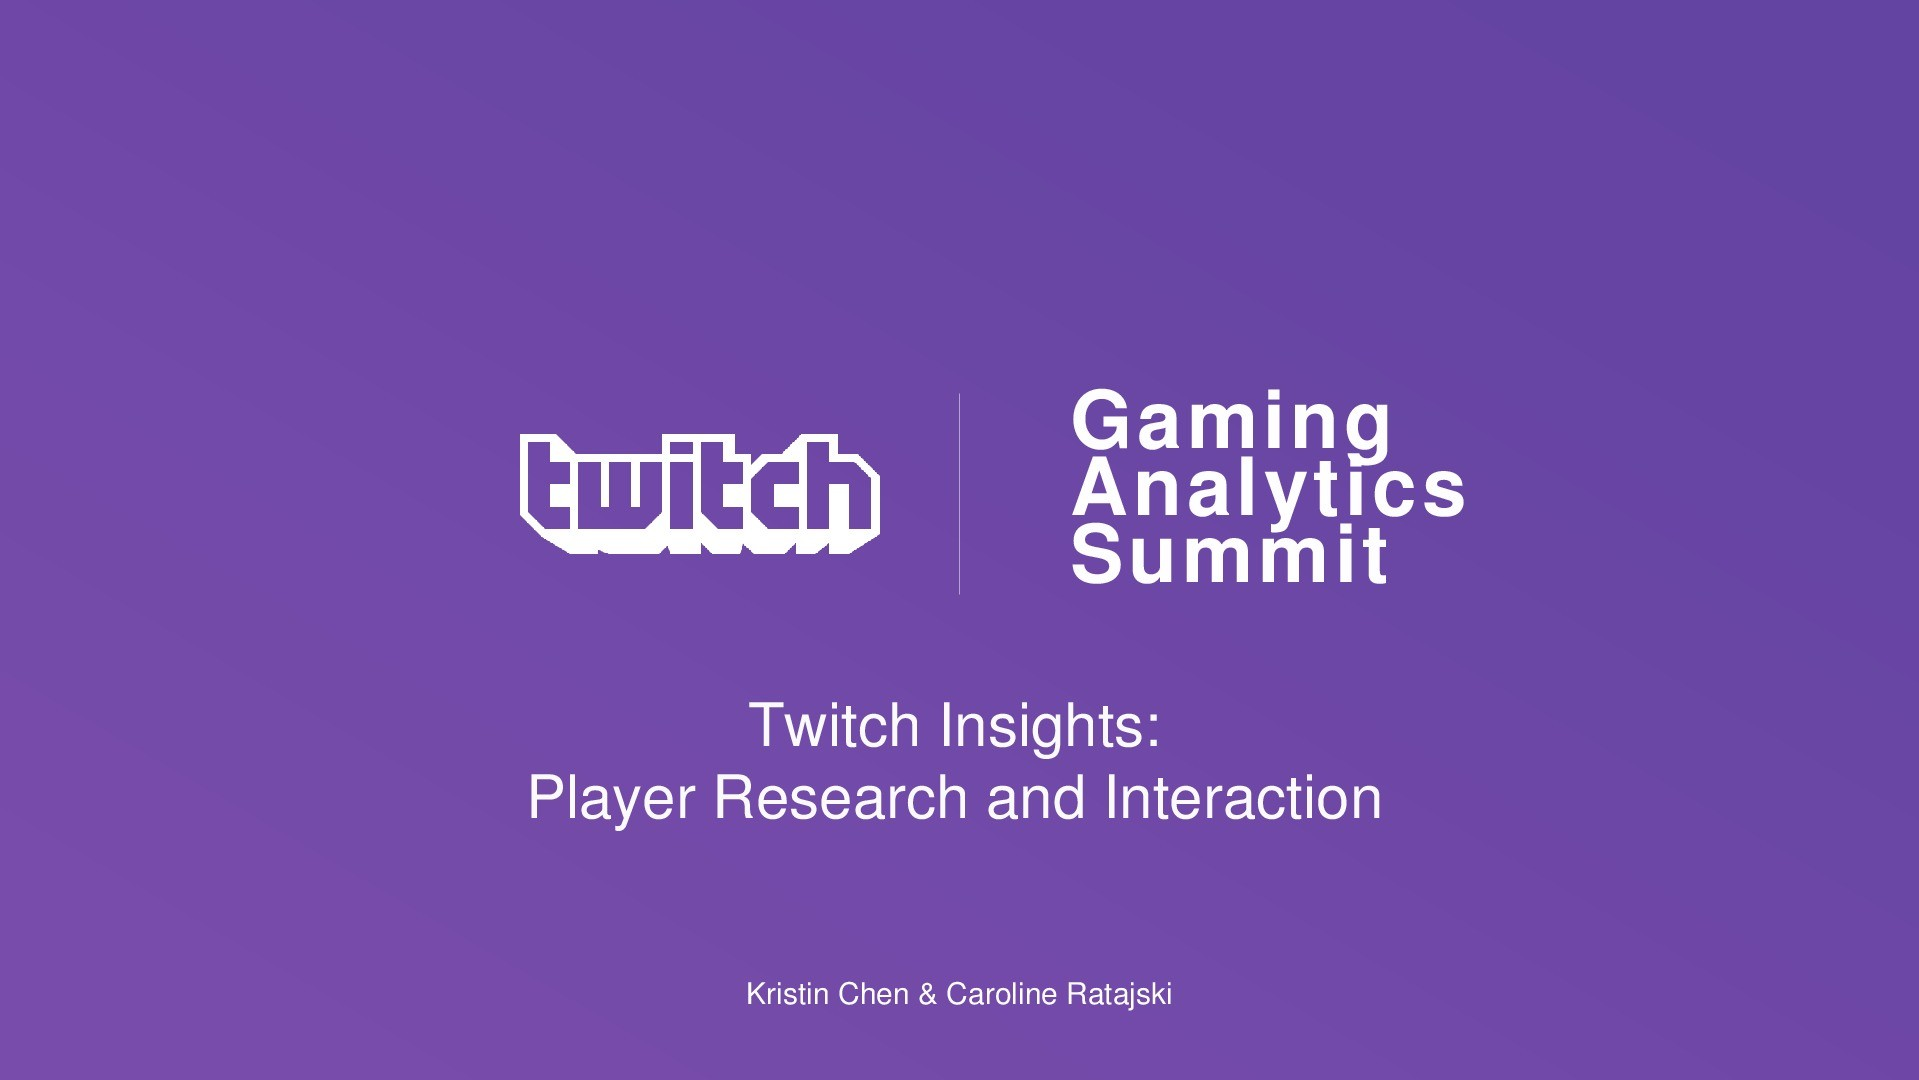 Twitch Insights: Player Research and Interaction